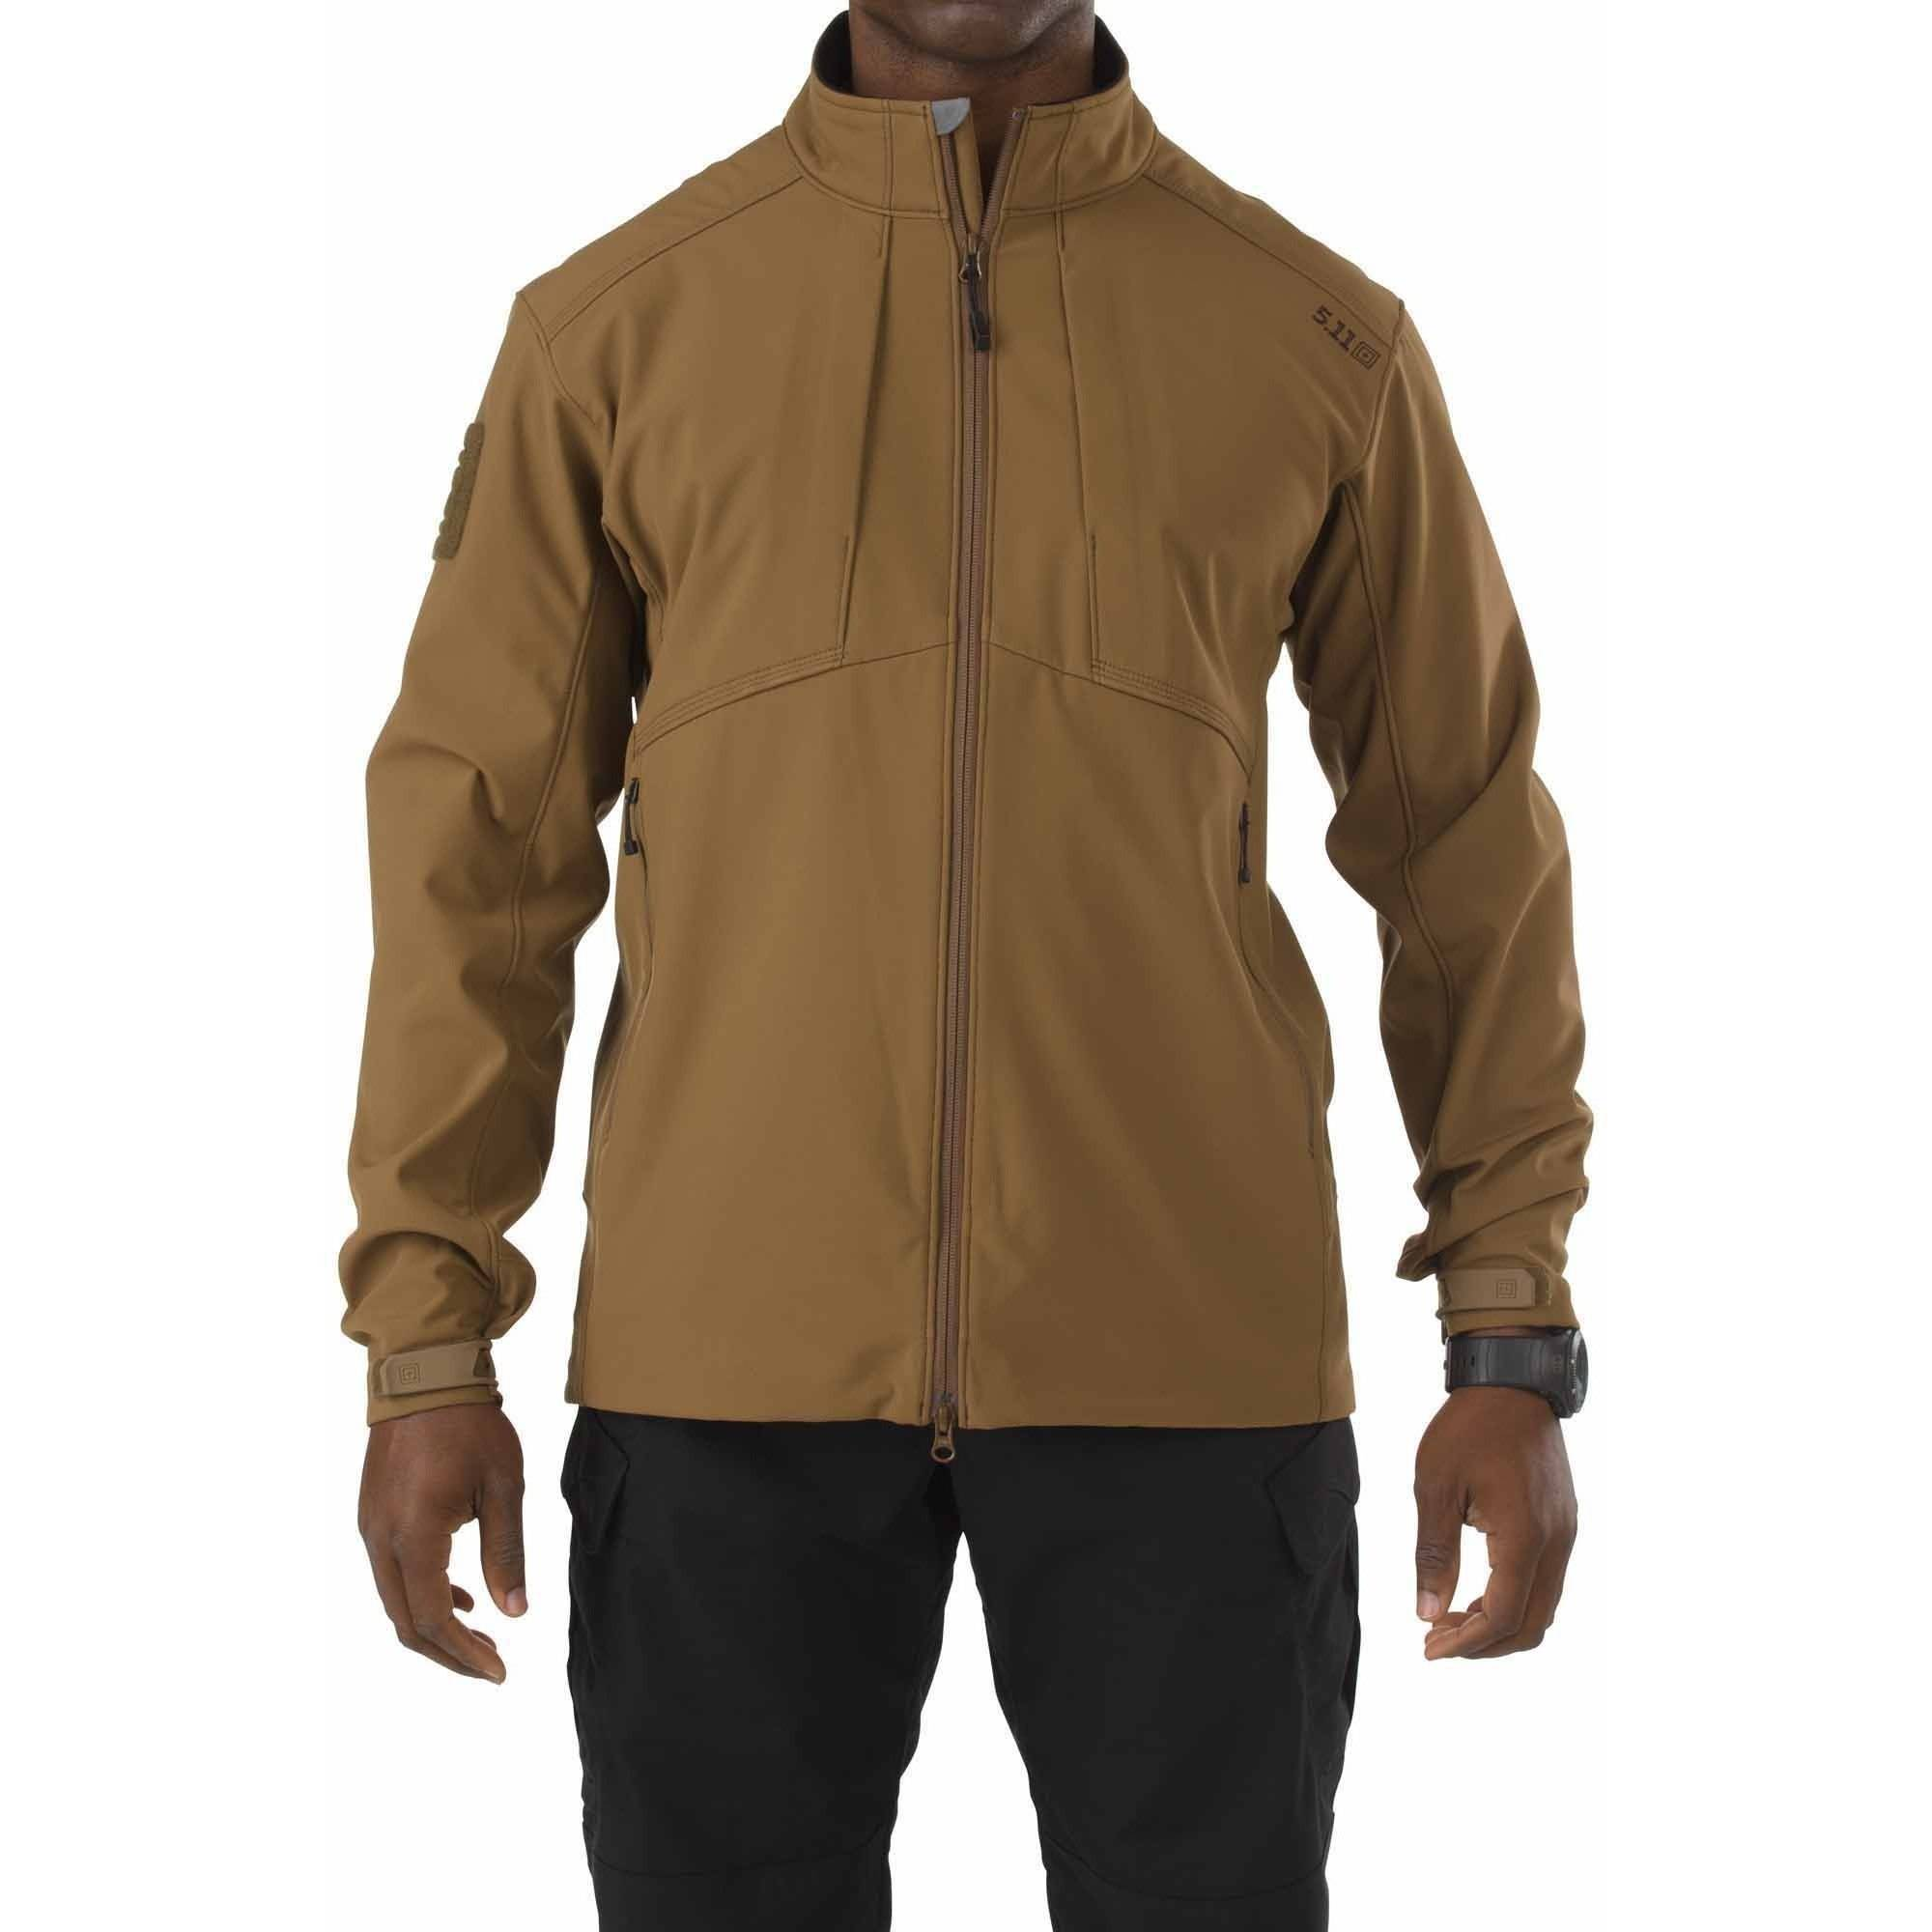 5.11 Tactical Sierra Softshell Jacket, Battle Brown by 5.11 Tactical